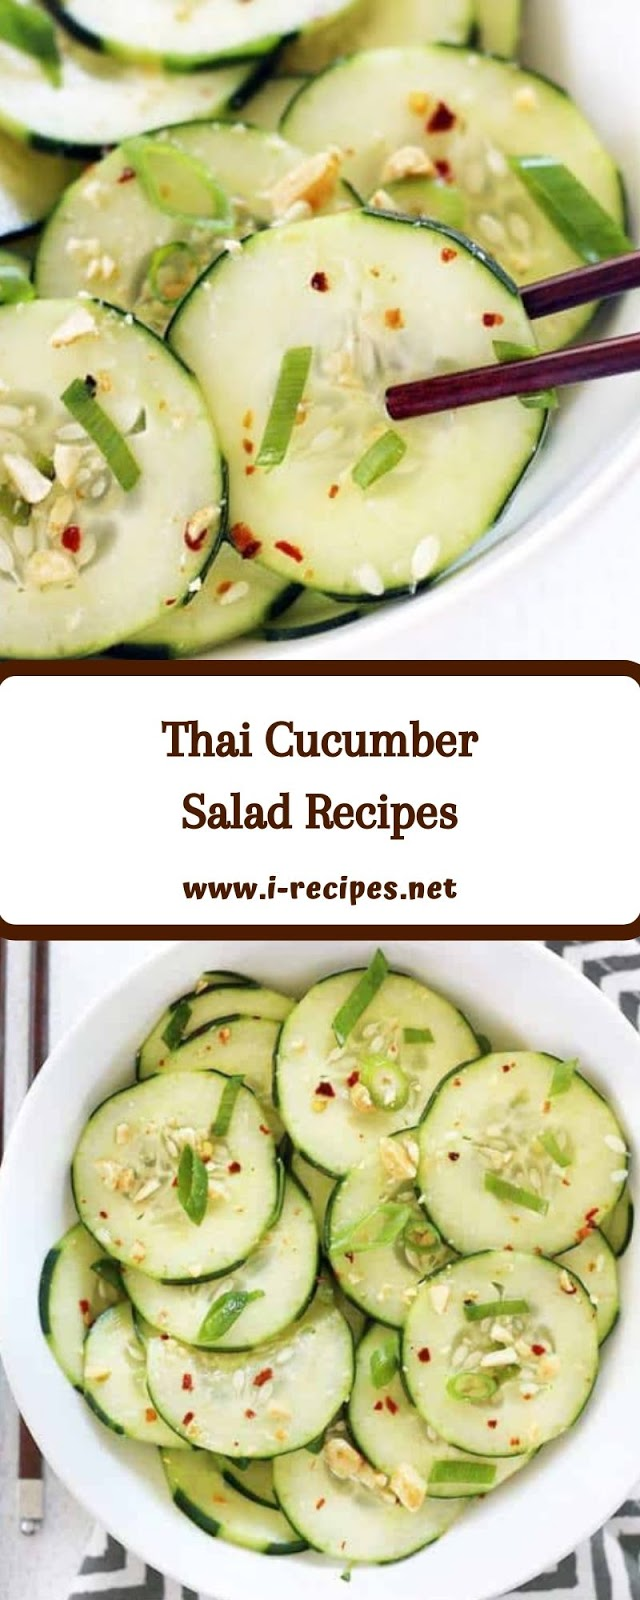 Thai Cucumber Salad Recipes